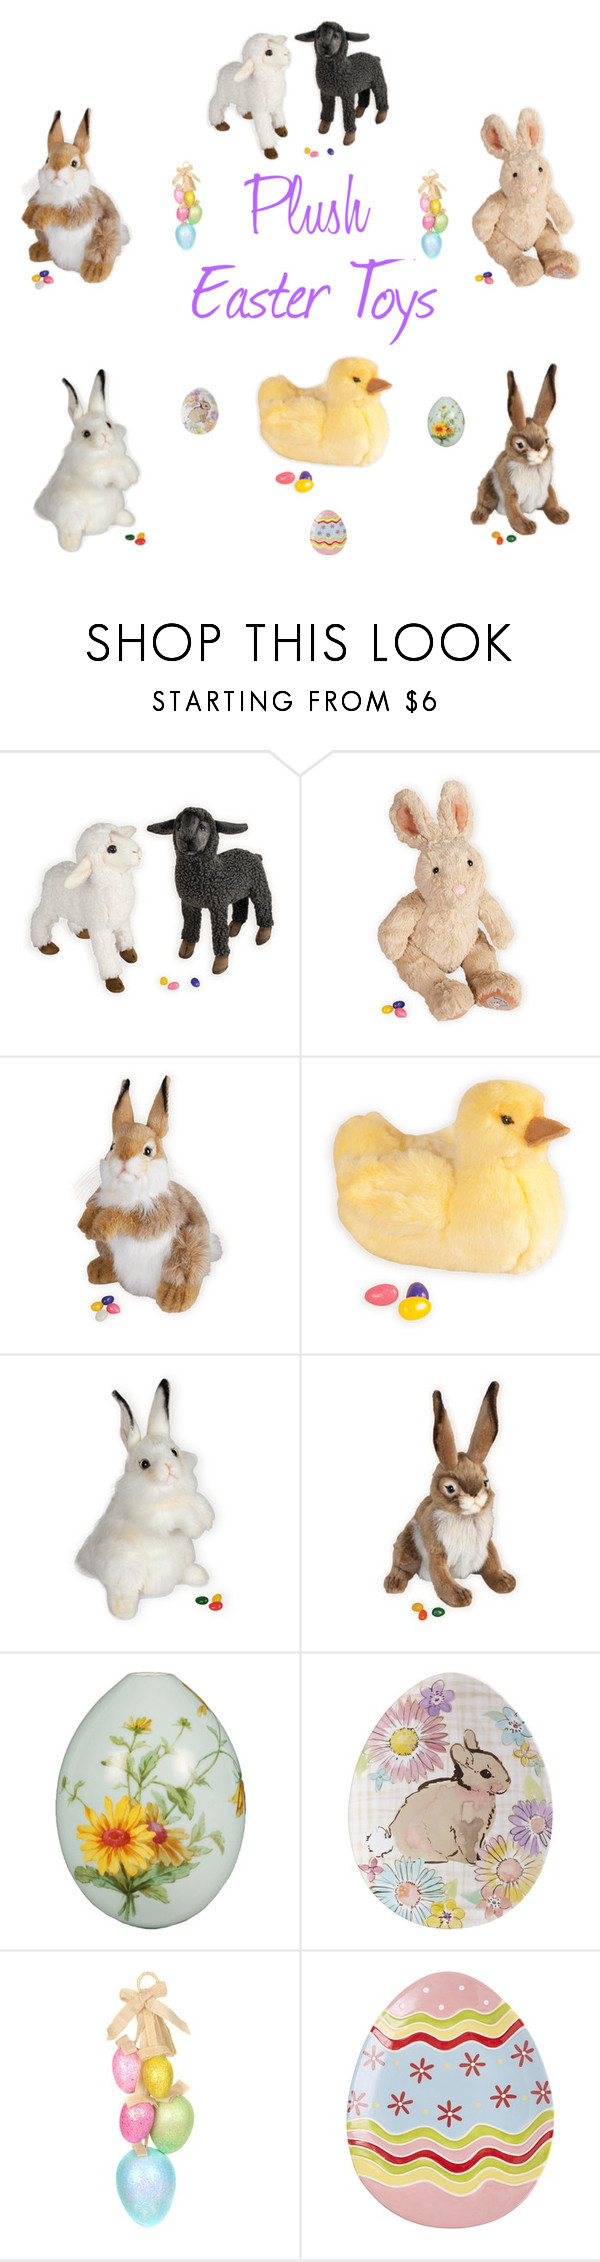 """Plush Easter Toys"" by woodensoldier on Polyvore featuring Pier 1 Imports"